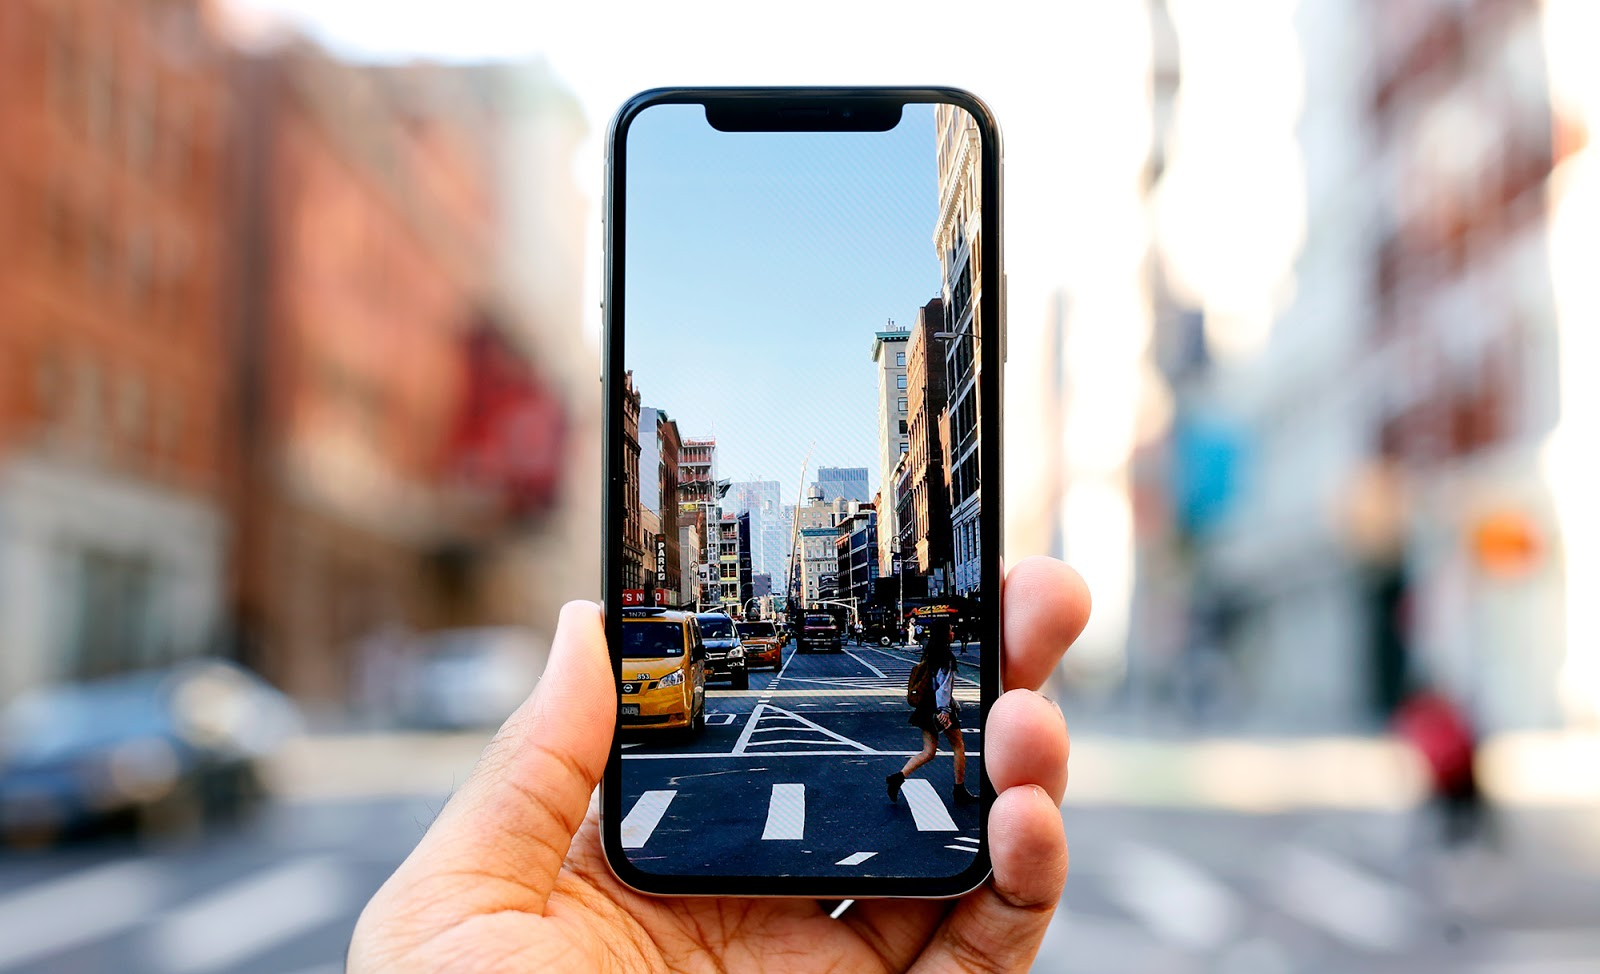 The Top Best Camera Apps for iPhone that You Shouldn't Miss